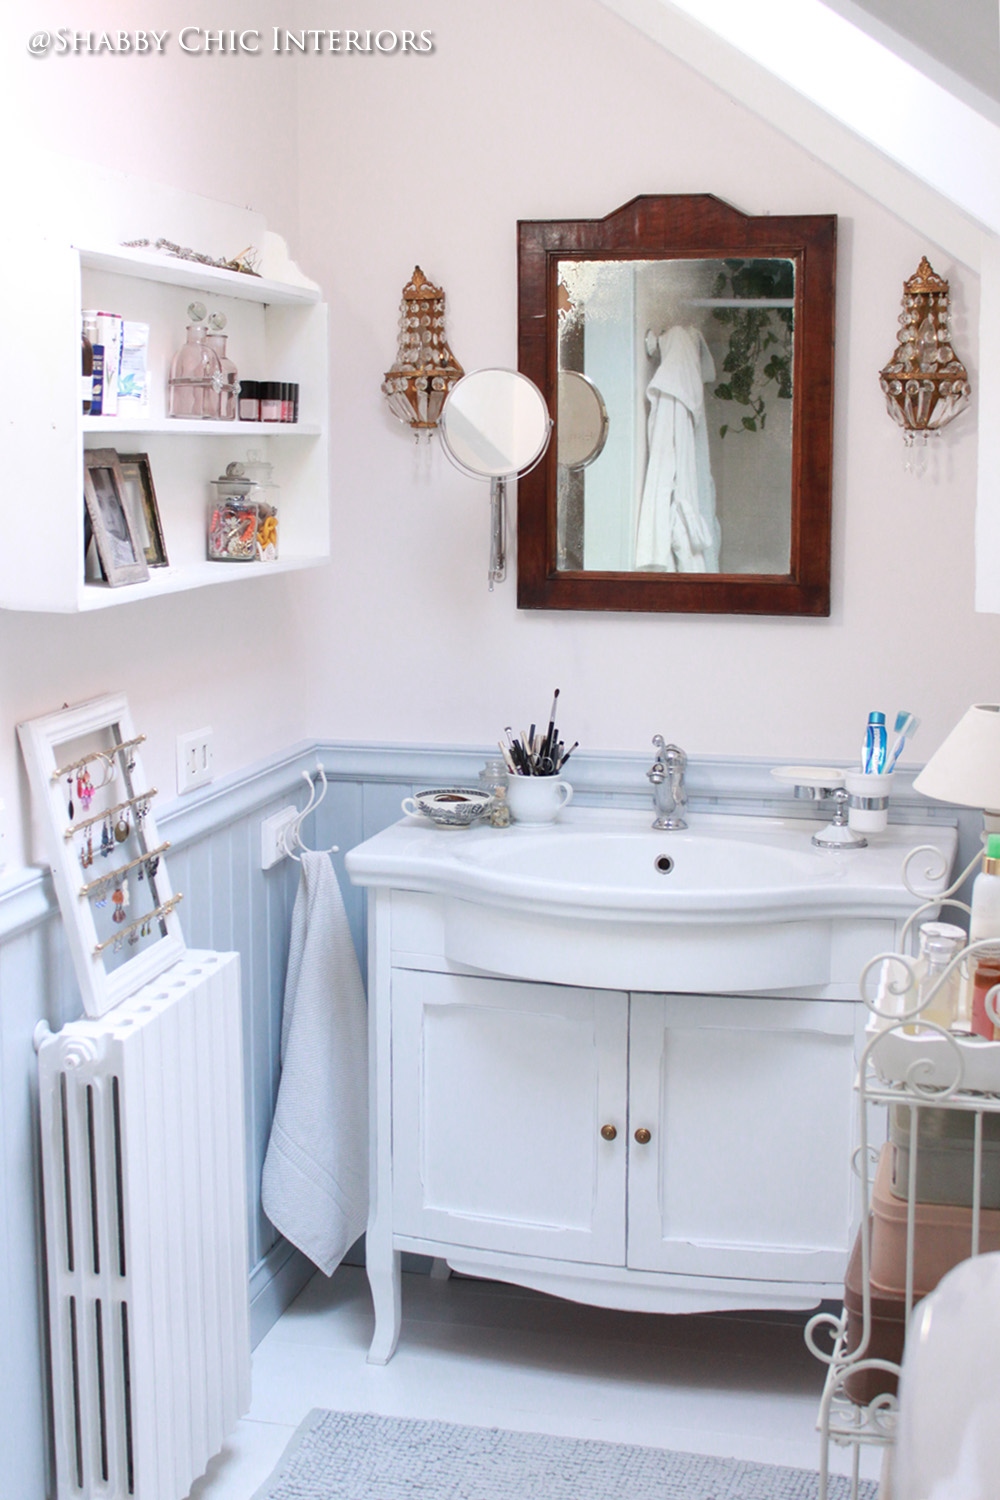 Un mobile lavabo, mille decorazioni - Shabby Chic Interiors